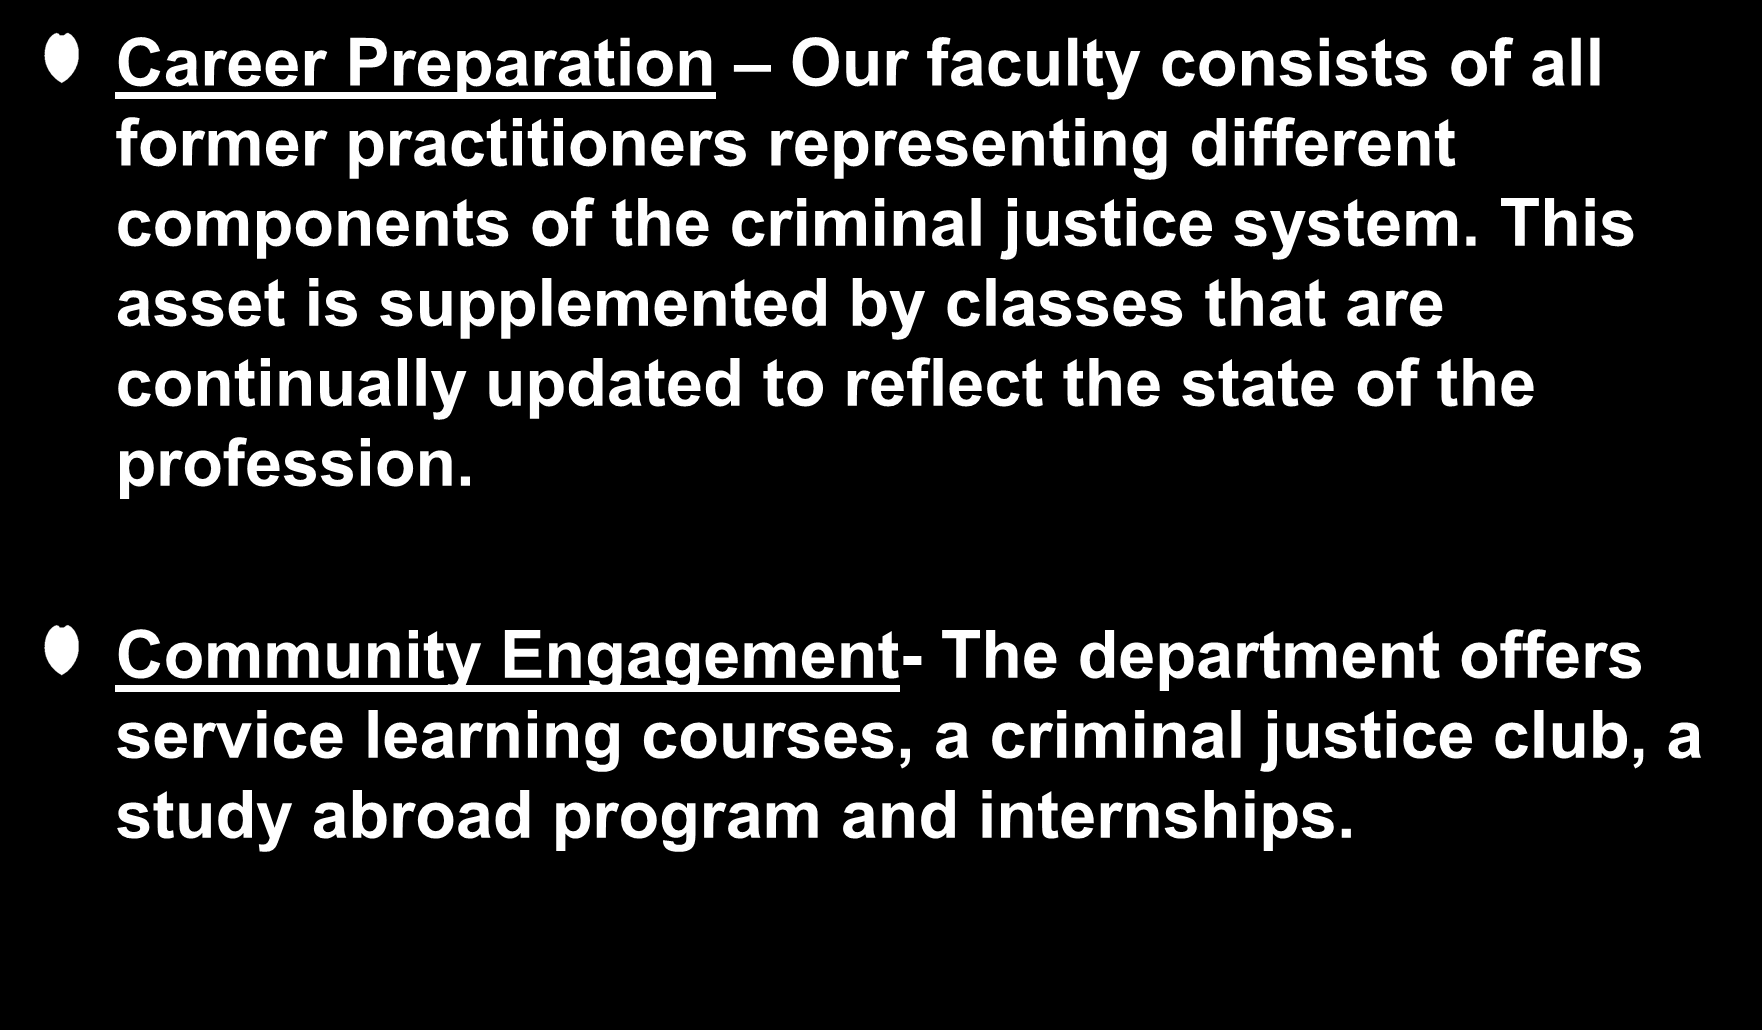 Career Preparation Our faculty consists of all former practitioners representing different components of the criminal justice system.